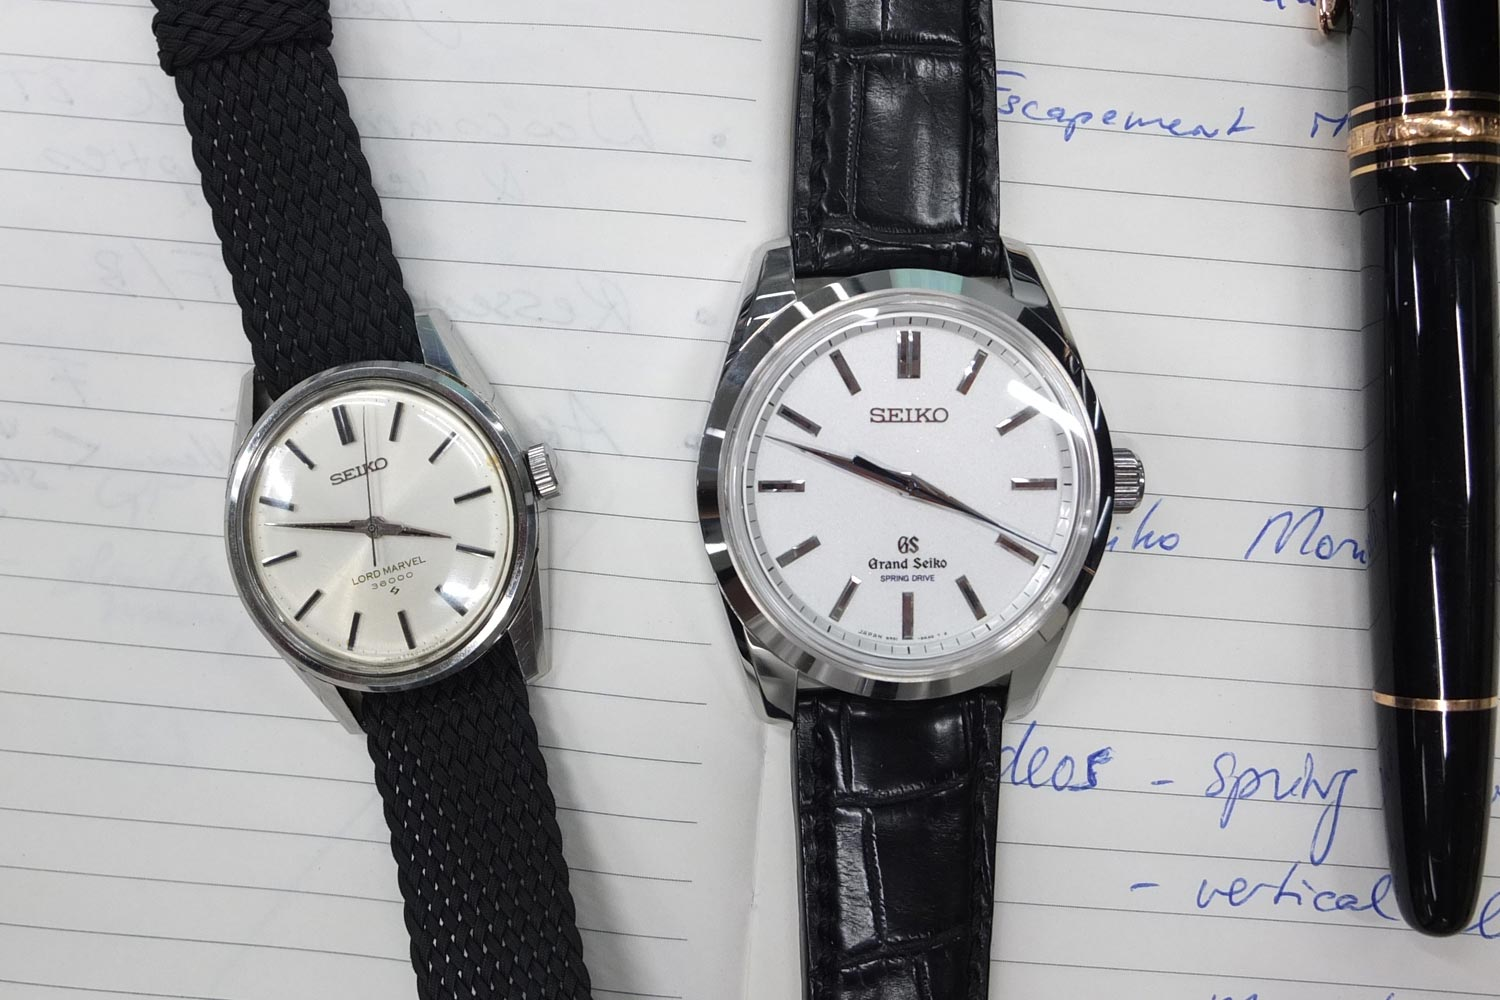 Grand Seiko SBGD201 + Seiko Lord Marvel 36000